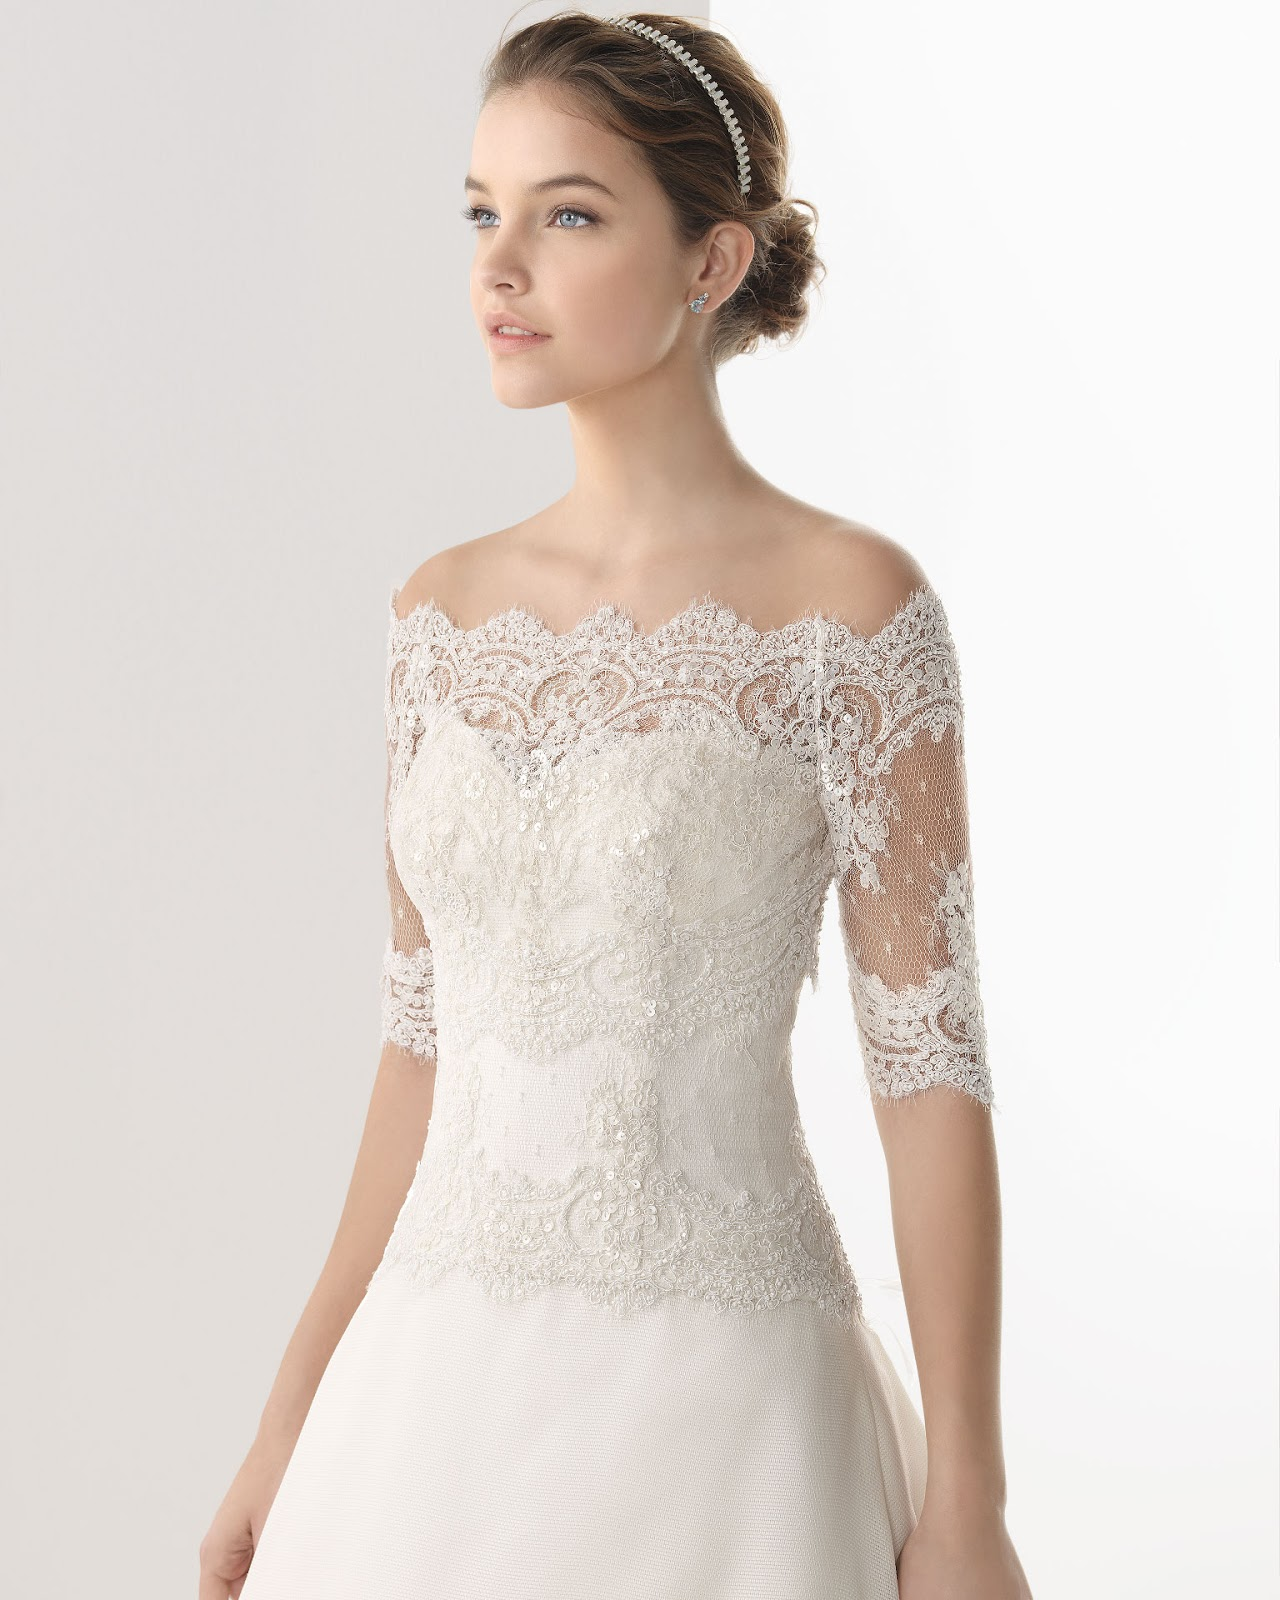 Bridal Lace Wedding Dresses With Long Sleeves 64